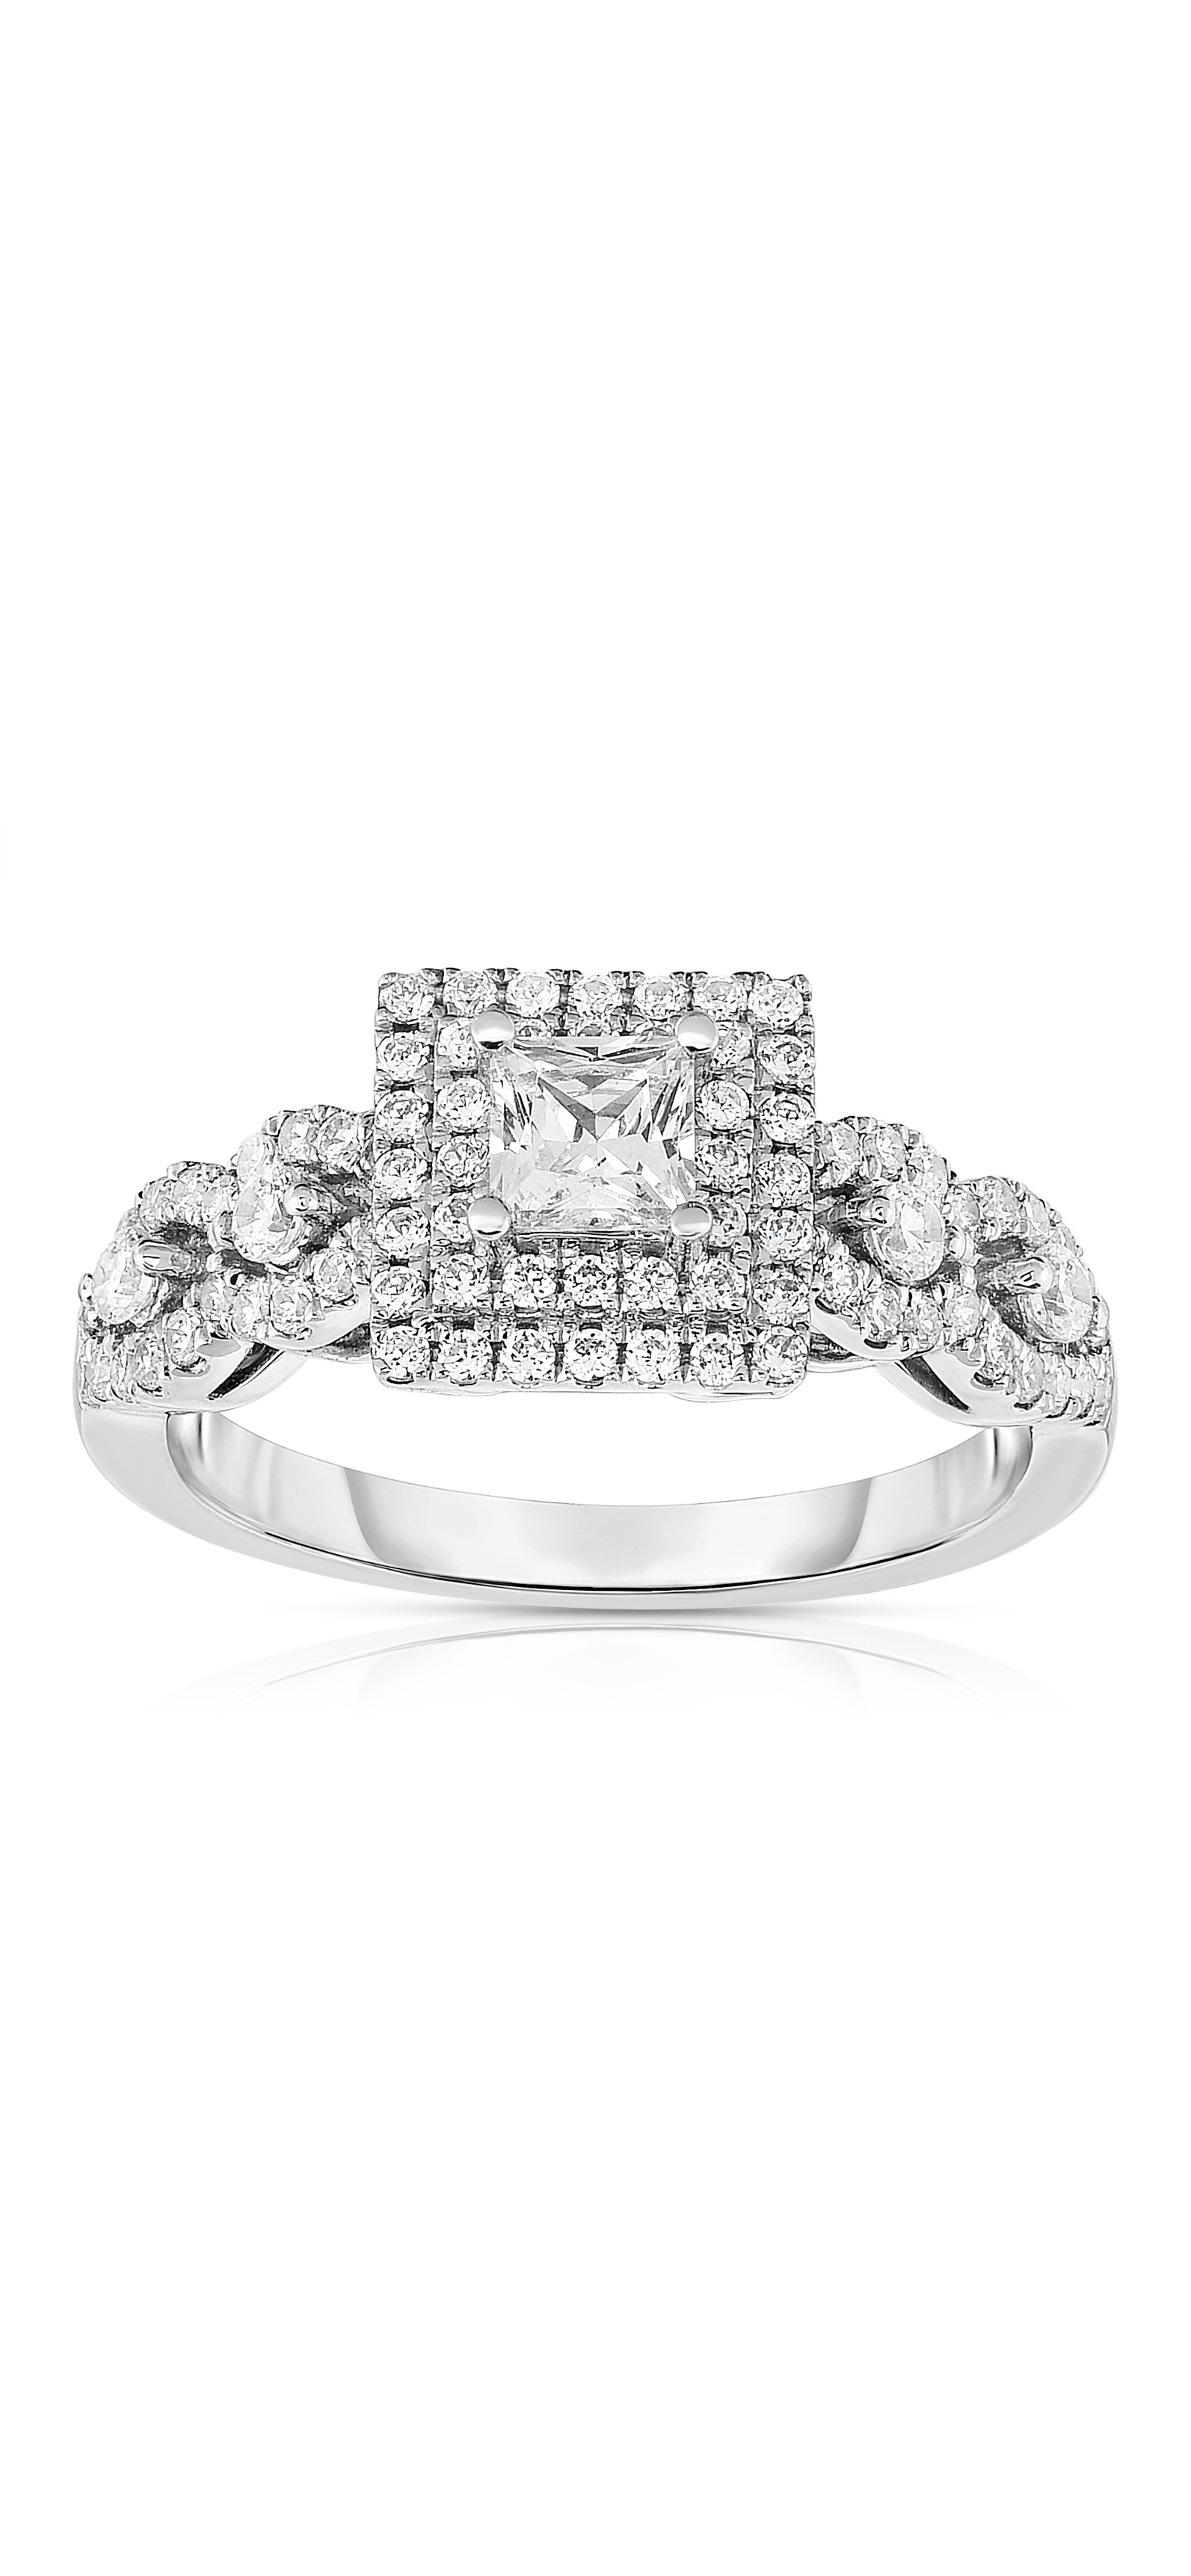 Diamond Engagement Ring Collection In Partnership With Zales Outlet Within Most Recent Diamond Double Frame Vintage Style Rings (View 9 of 15)